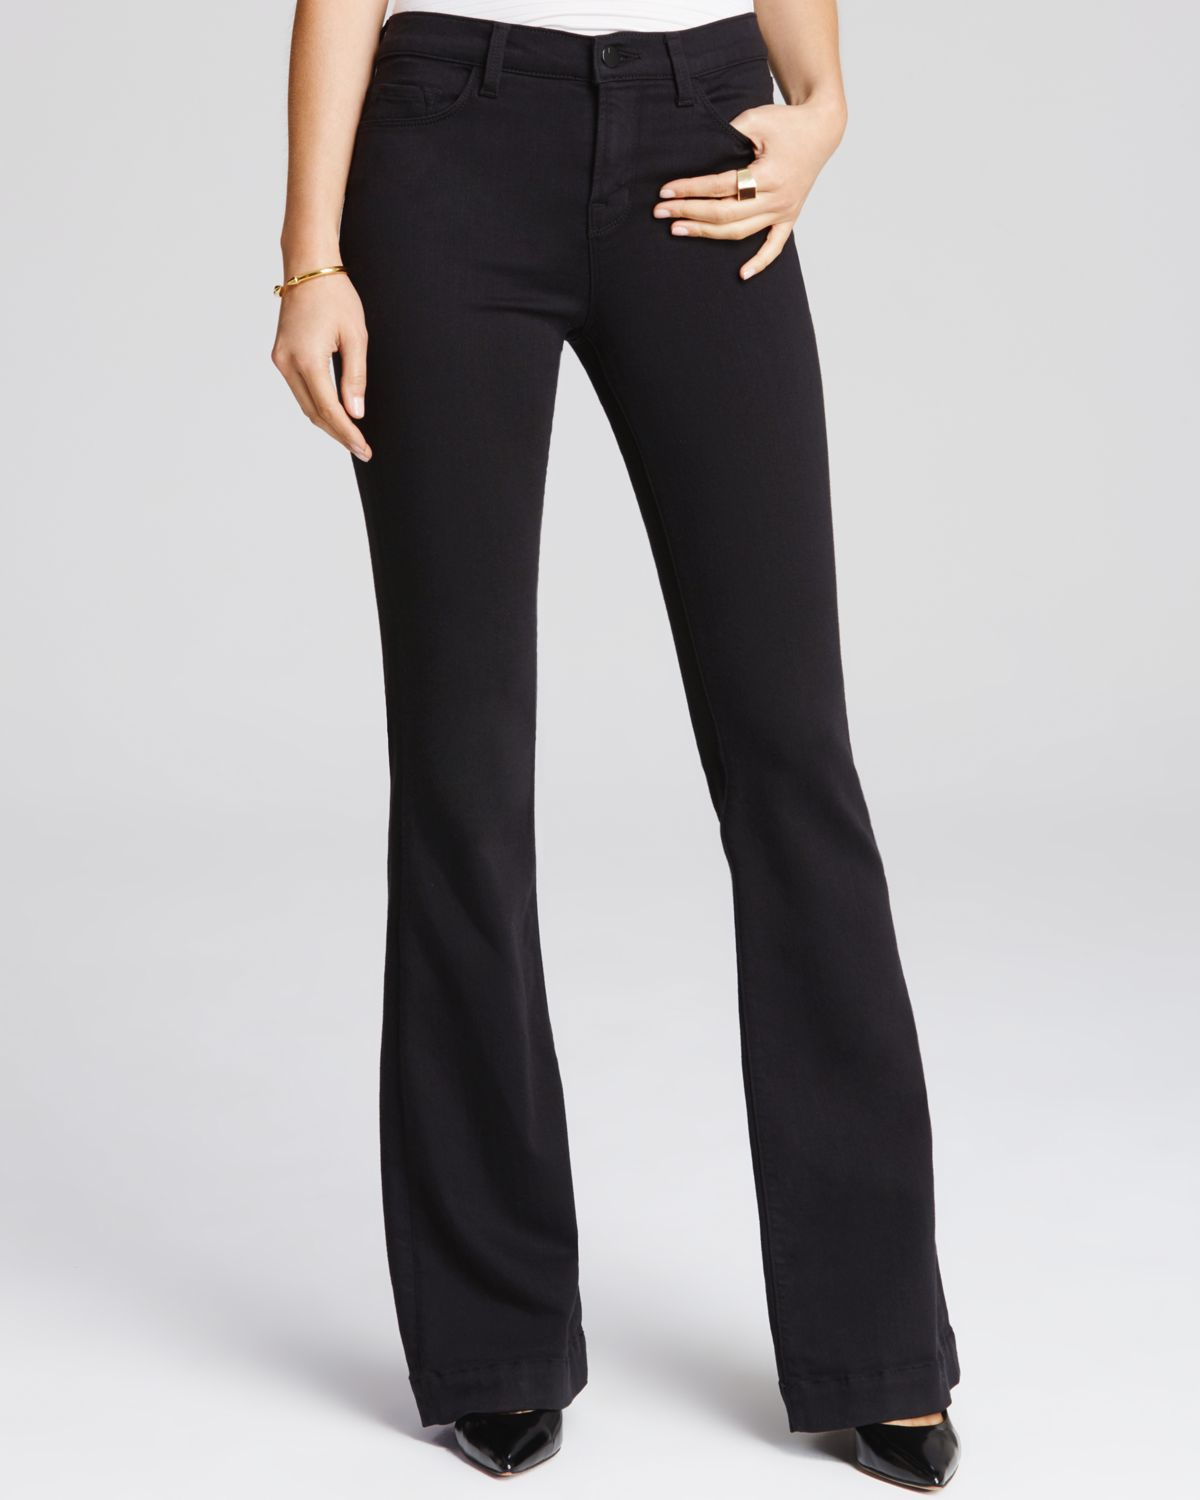 j brand maria flare jeans in seriously black in black seriously black lyst. Black Bedroom Furniture Sets. Home Design Ideas